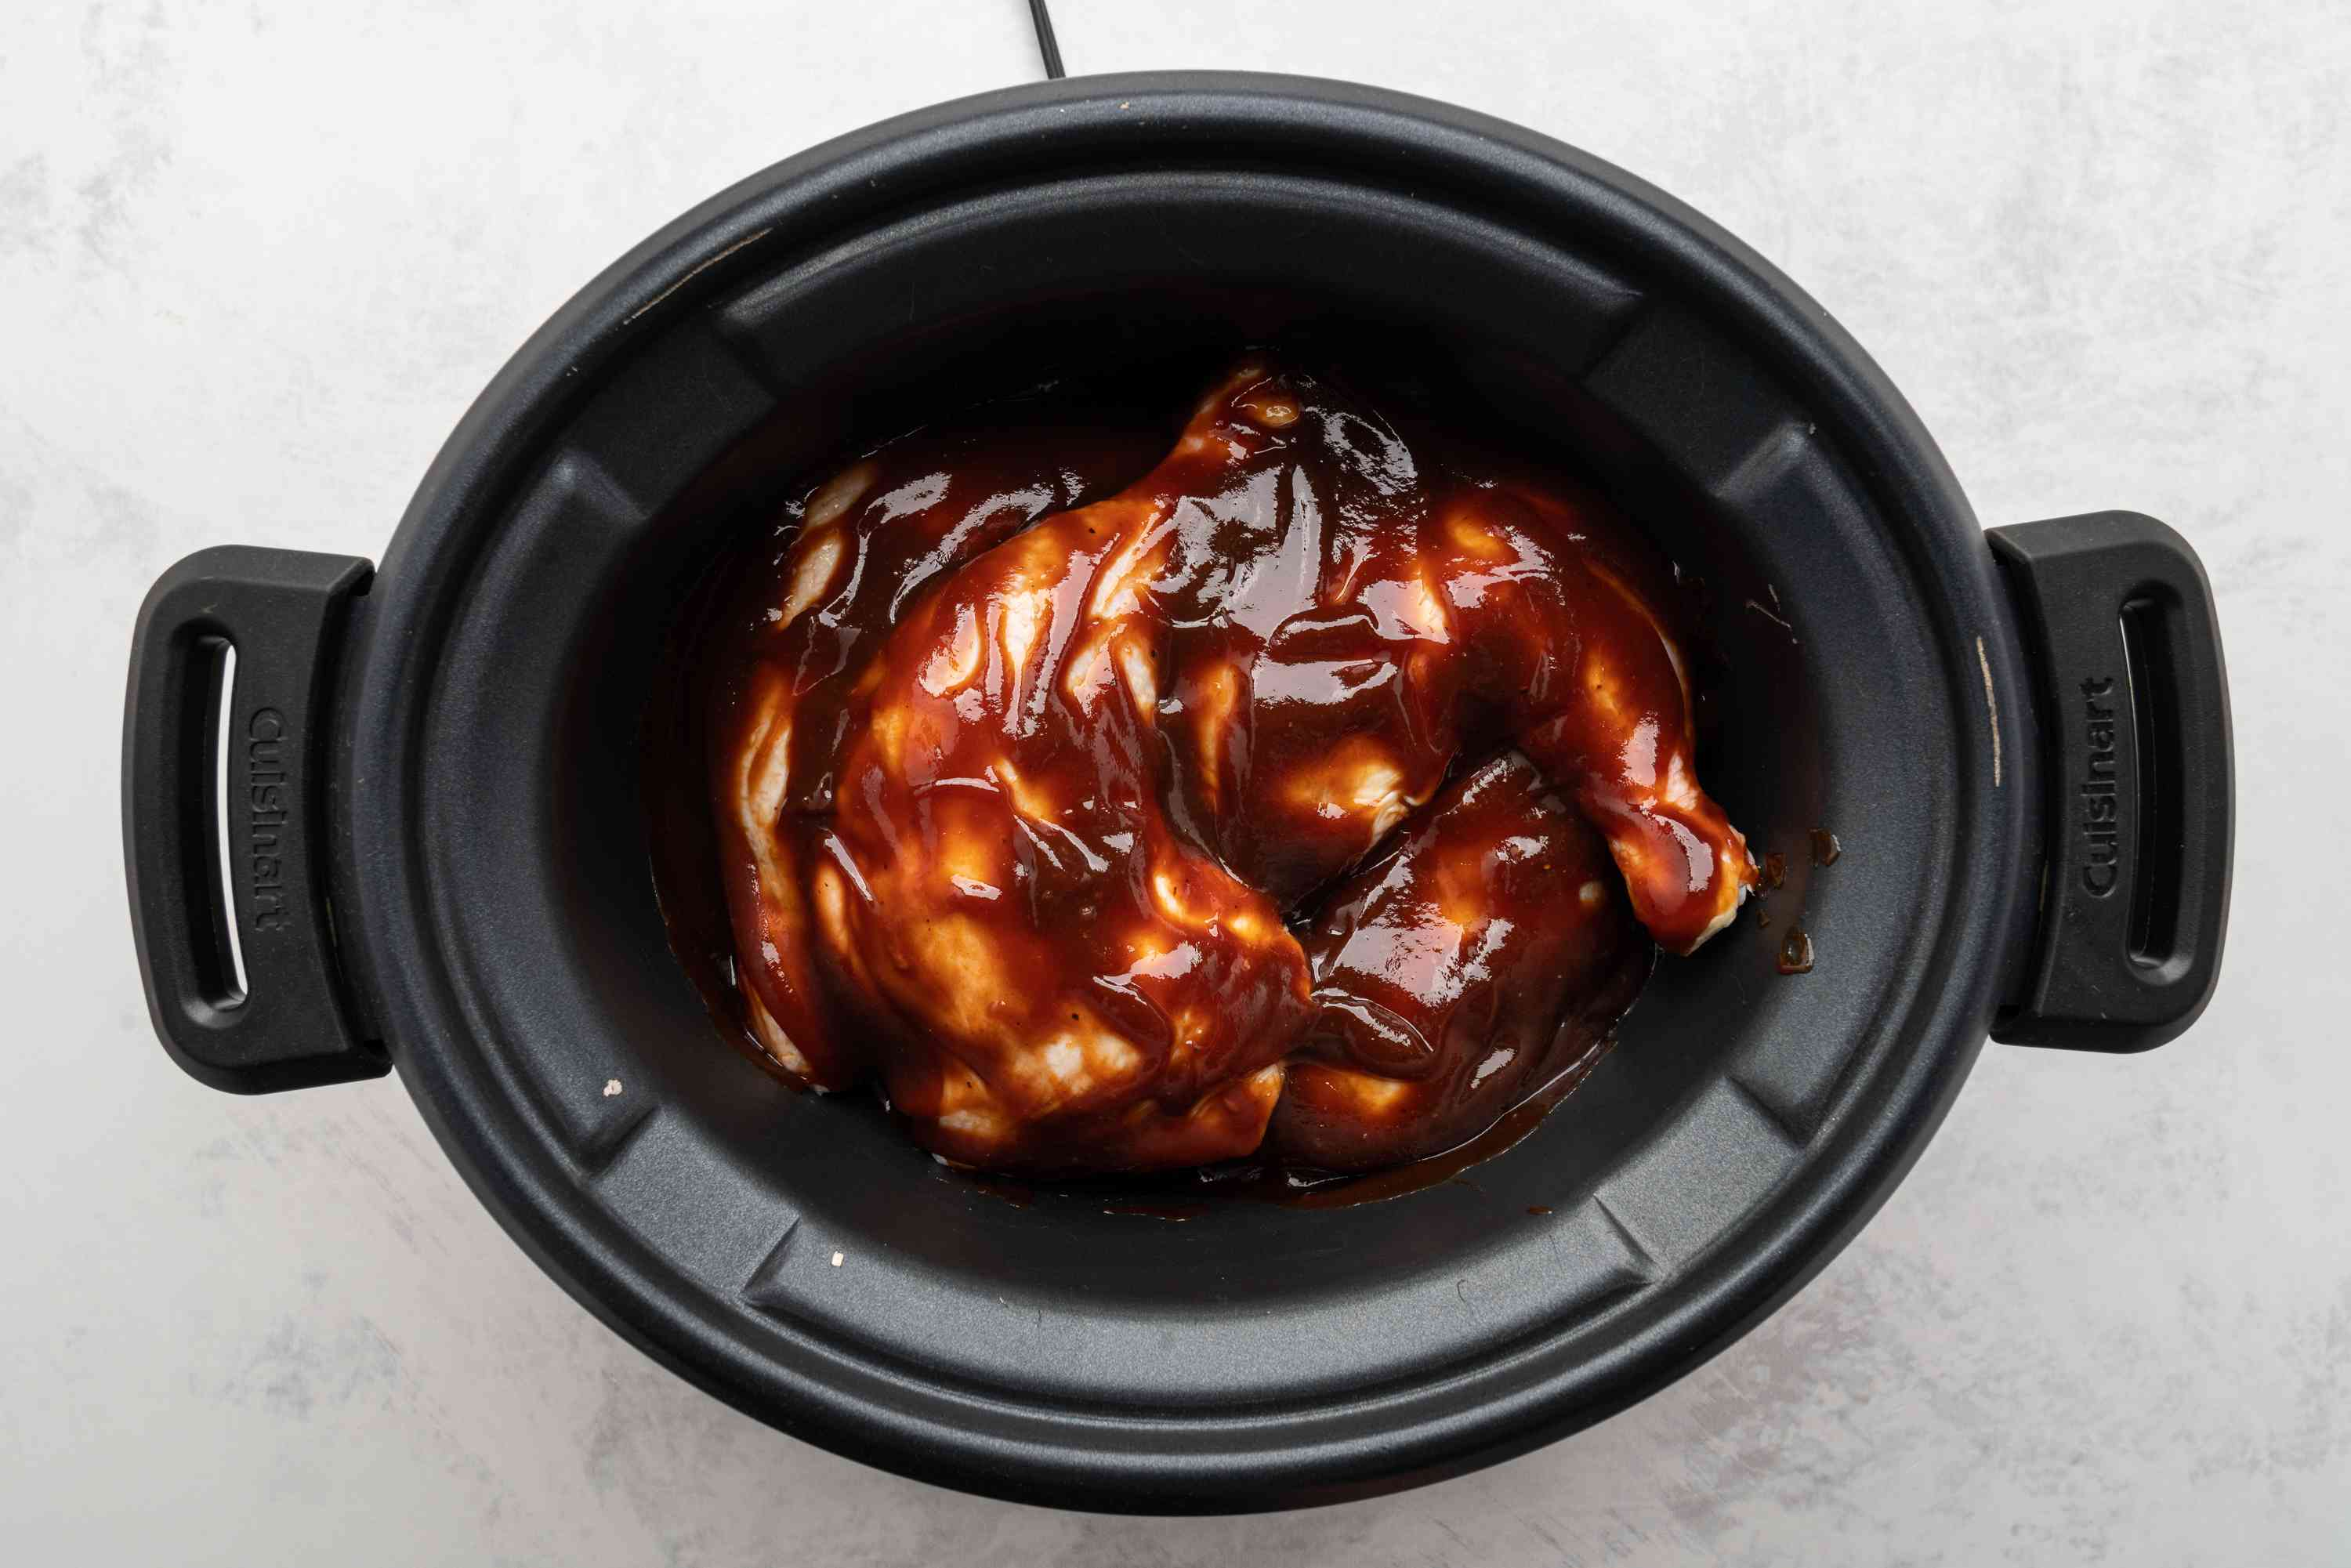 Pour barbecue sauce over chicken legs in the slow cooker